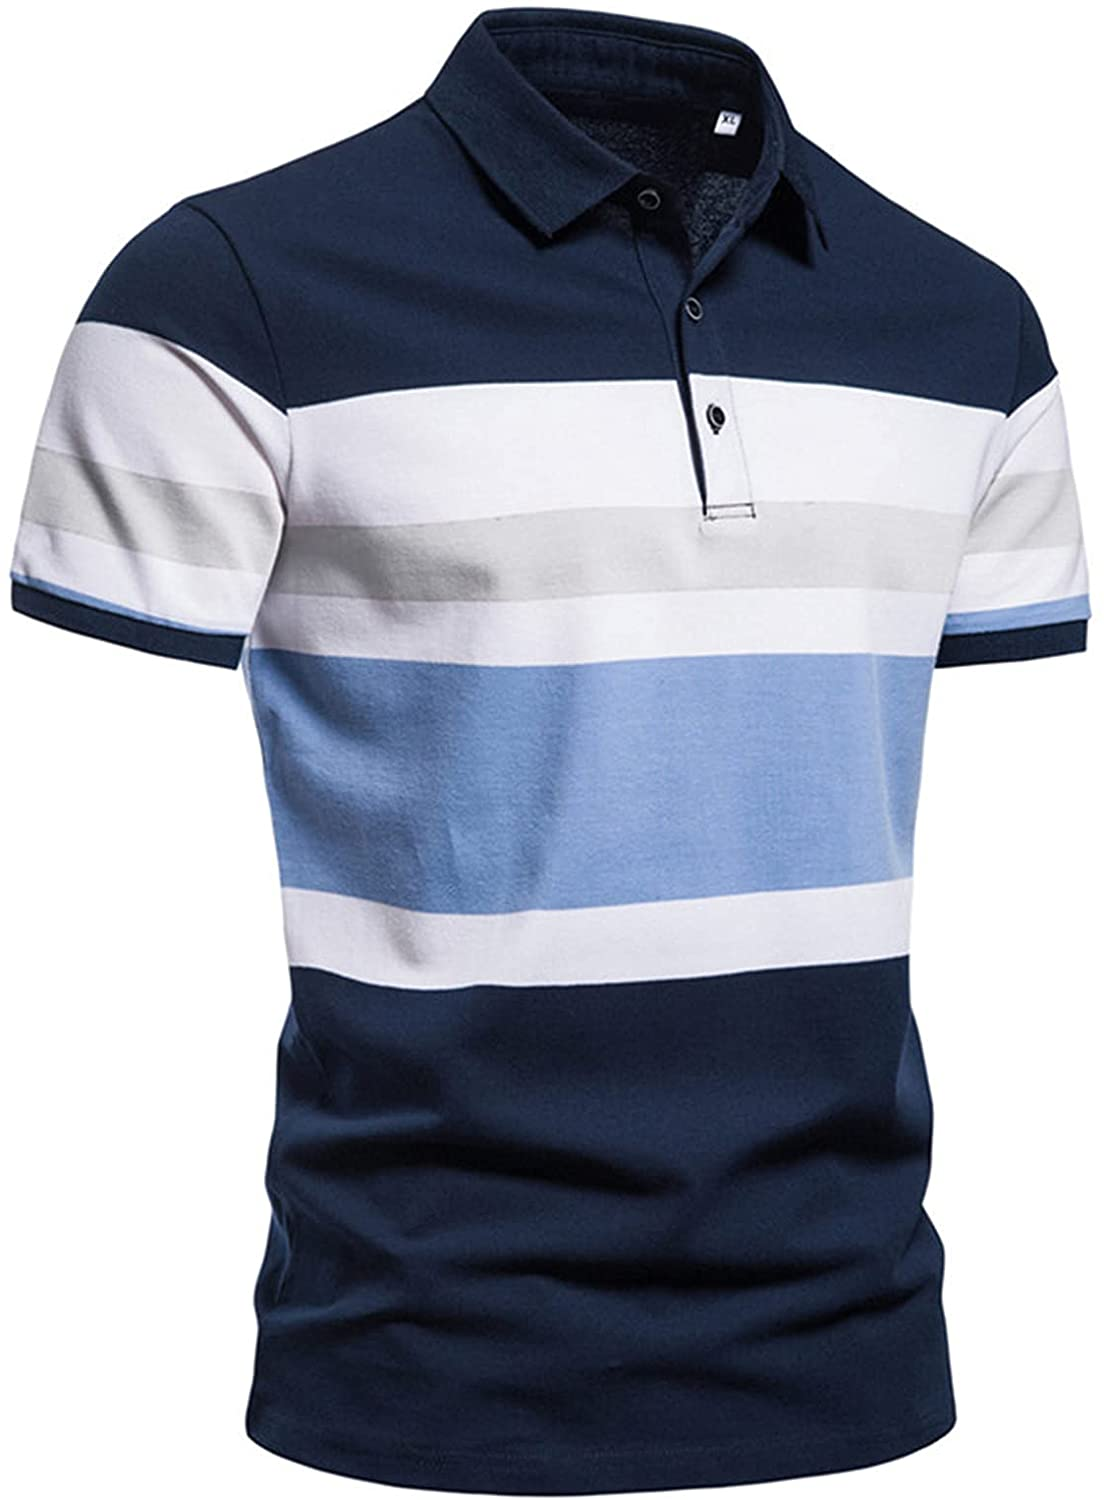 Mens Fashion Stripe Patchwork Color Polo Shirt Regular-Fit with Pockets,Hunk X-Temp Performance Polo Tops